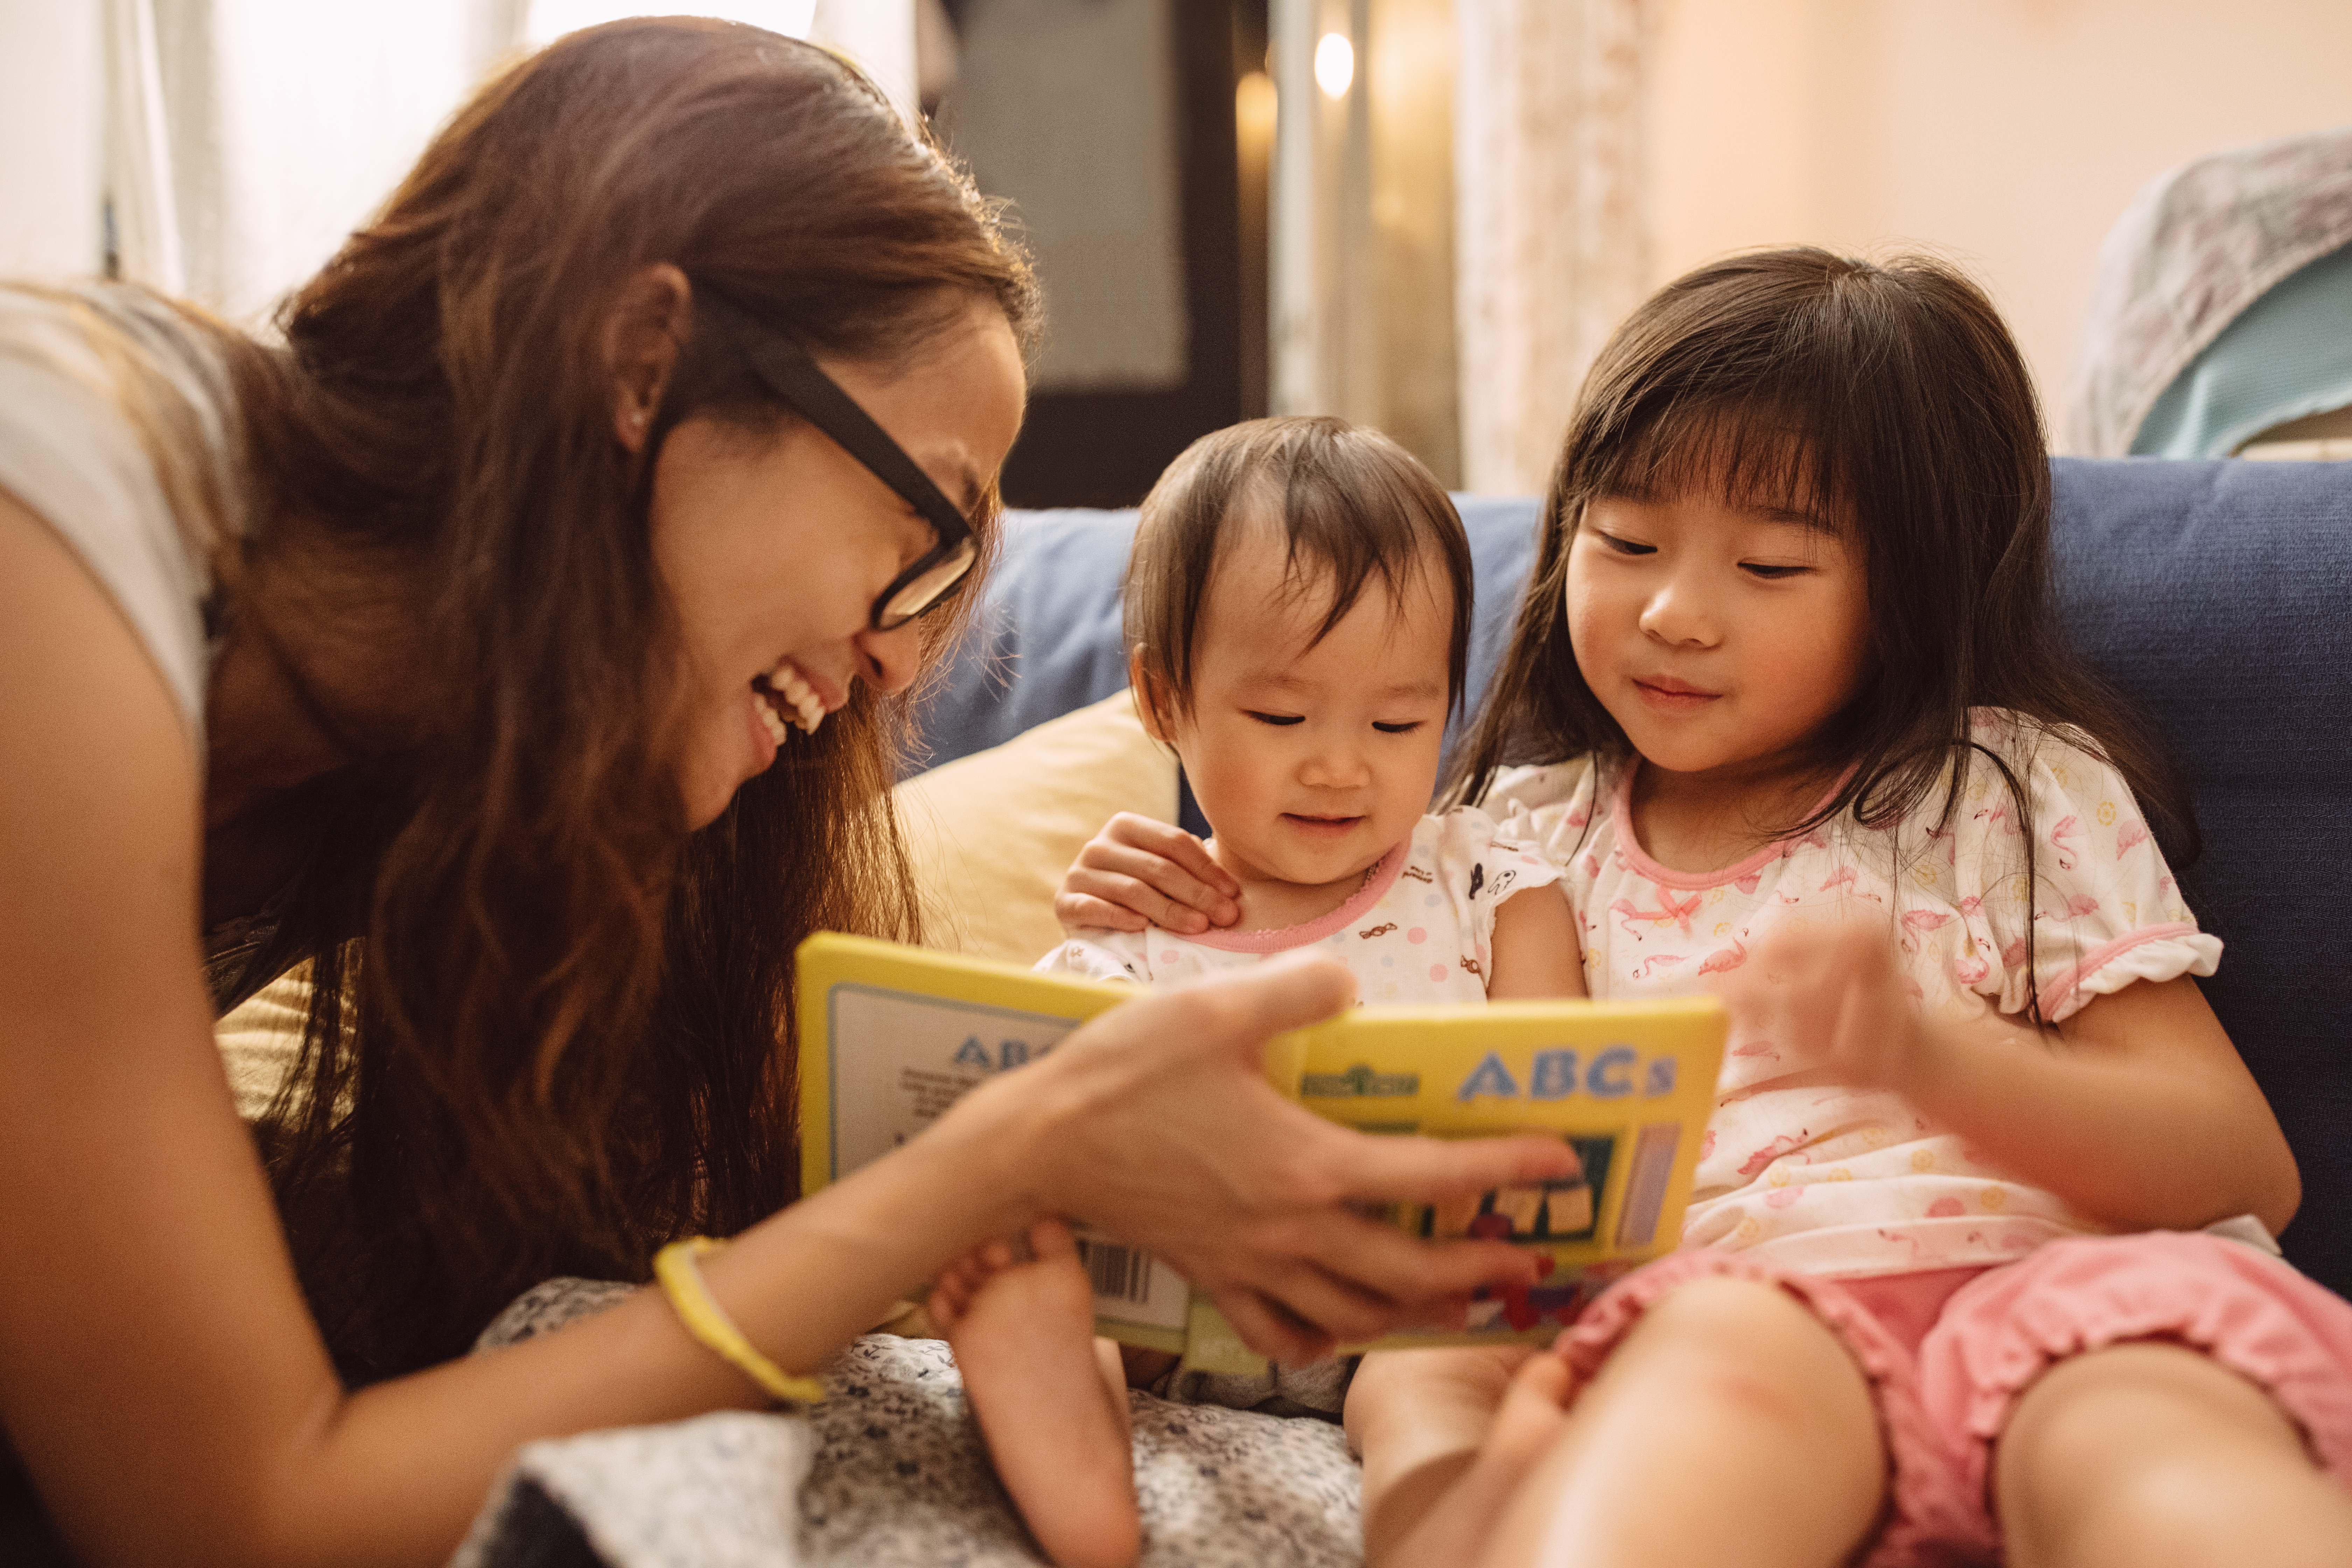 Mom reading story book to her daughter and baby on the couch.